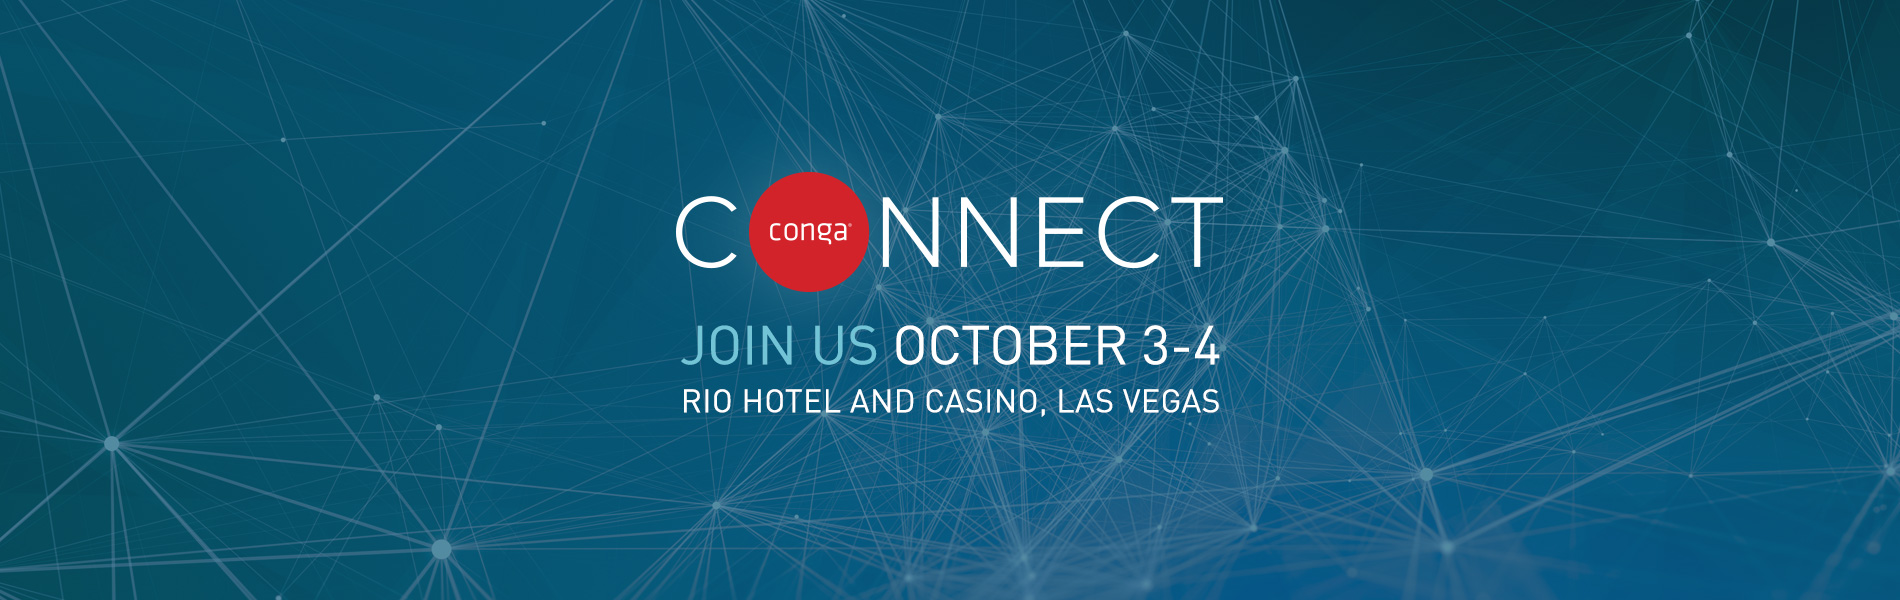 Conga Connect Las Vegas 2017